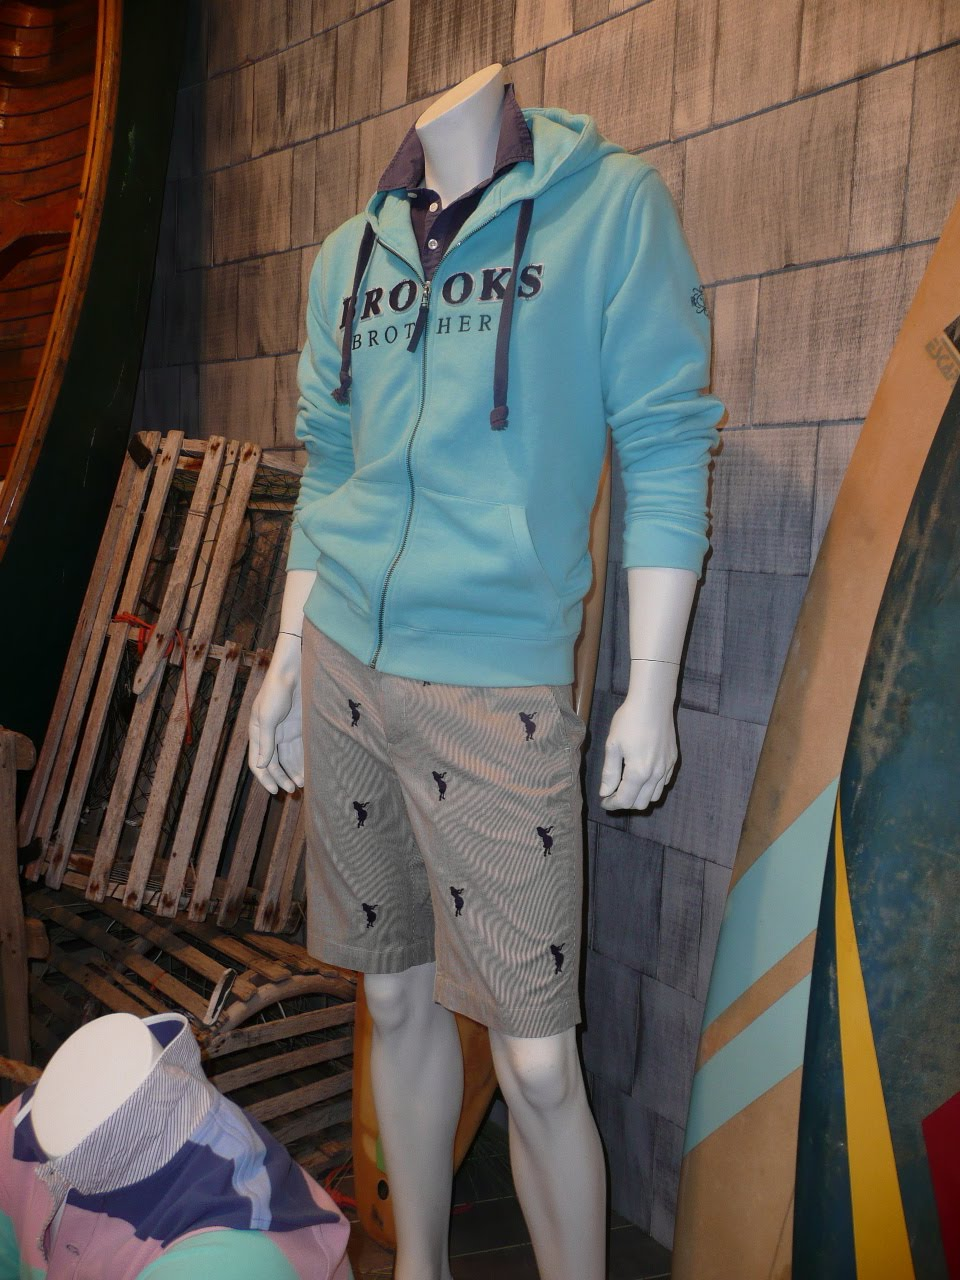 Fashion Buyer Uk 18 Jun 2010 Tendencies Tshirt Legend Led Turquoise S Taking Their Lead From Ralph Laurens Repeat Polo Player Emblem On Trousers And Shorts A Number Of Brands Put Own Spin The Look By Using House